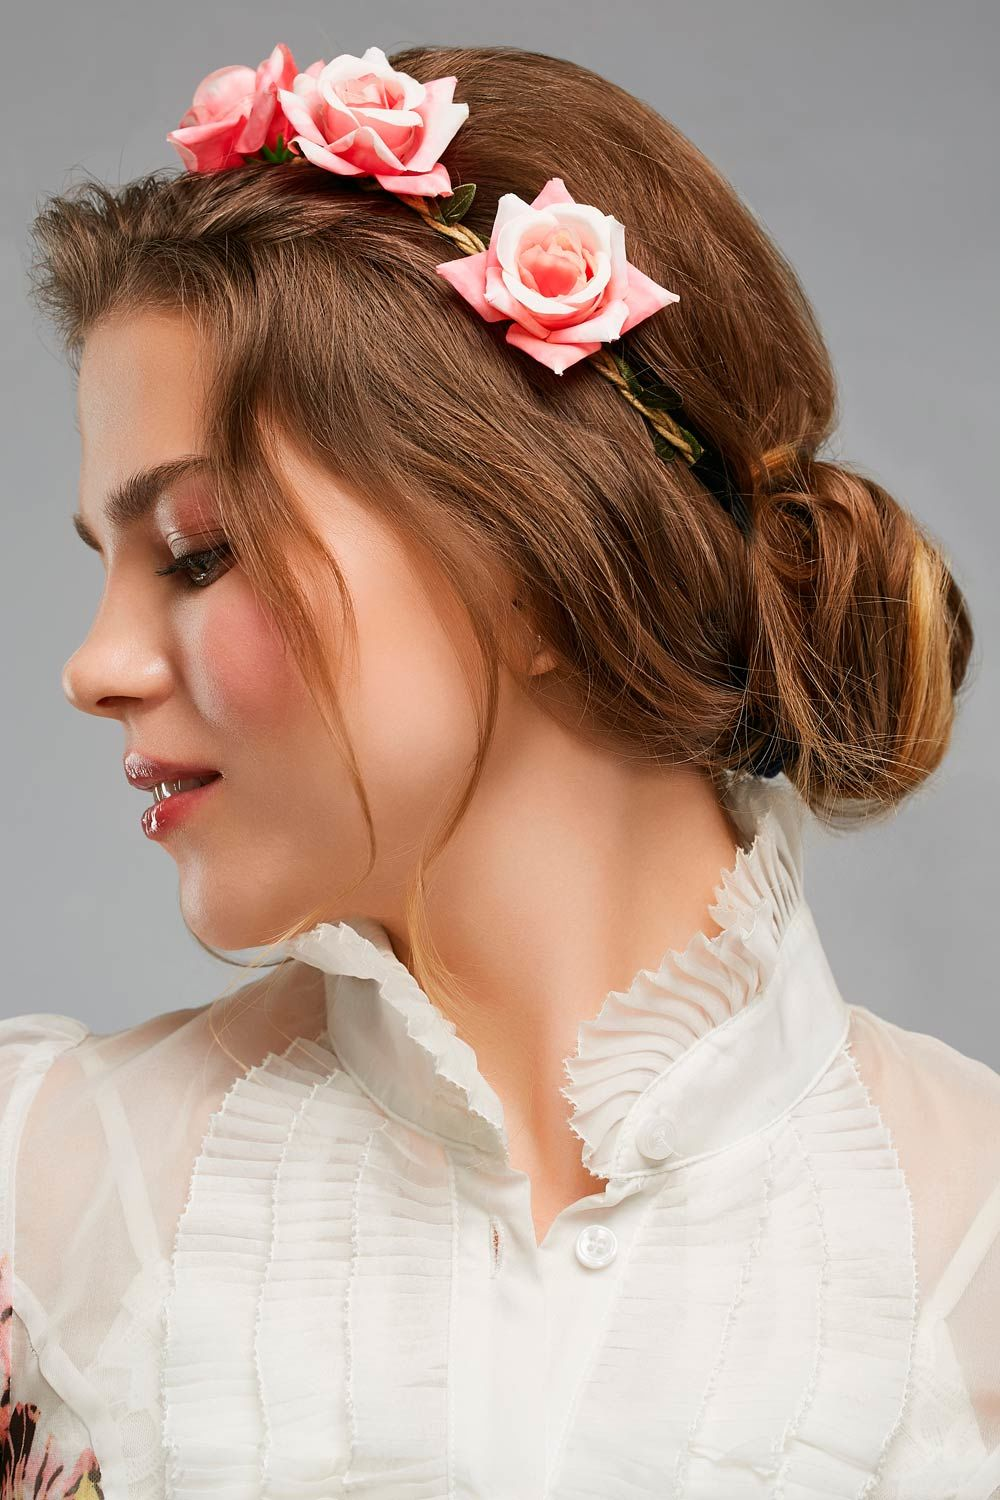 Accessorized With Flower Hairstyle With Bun